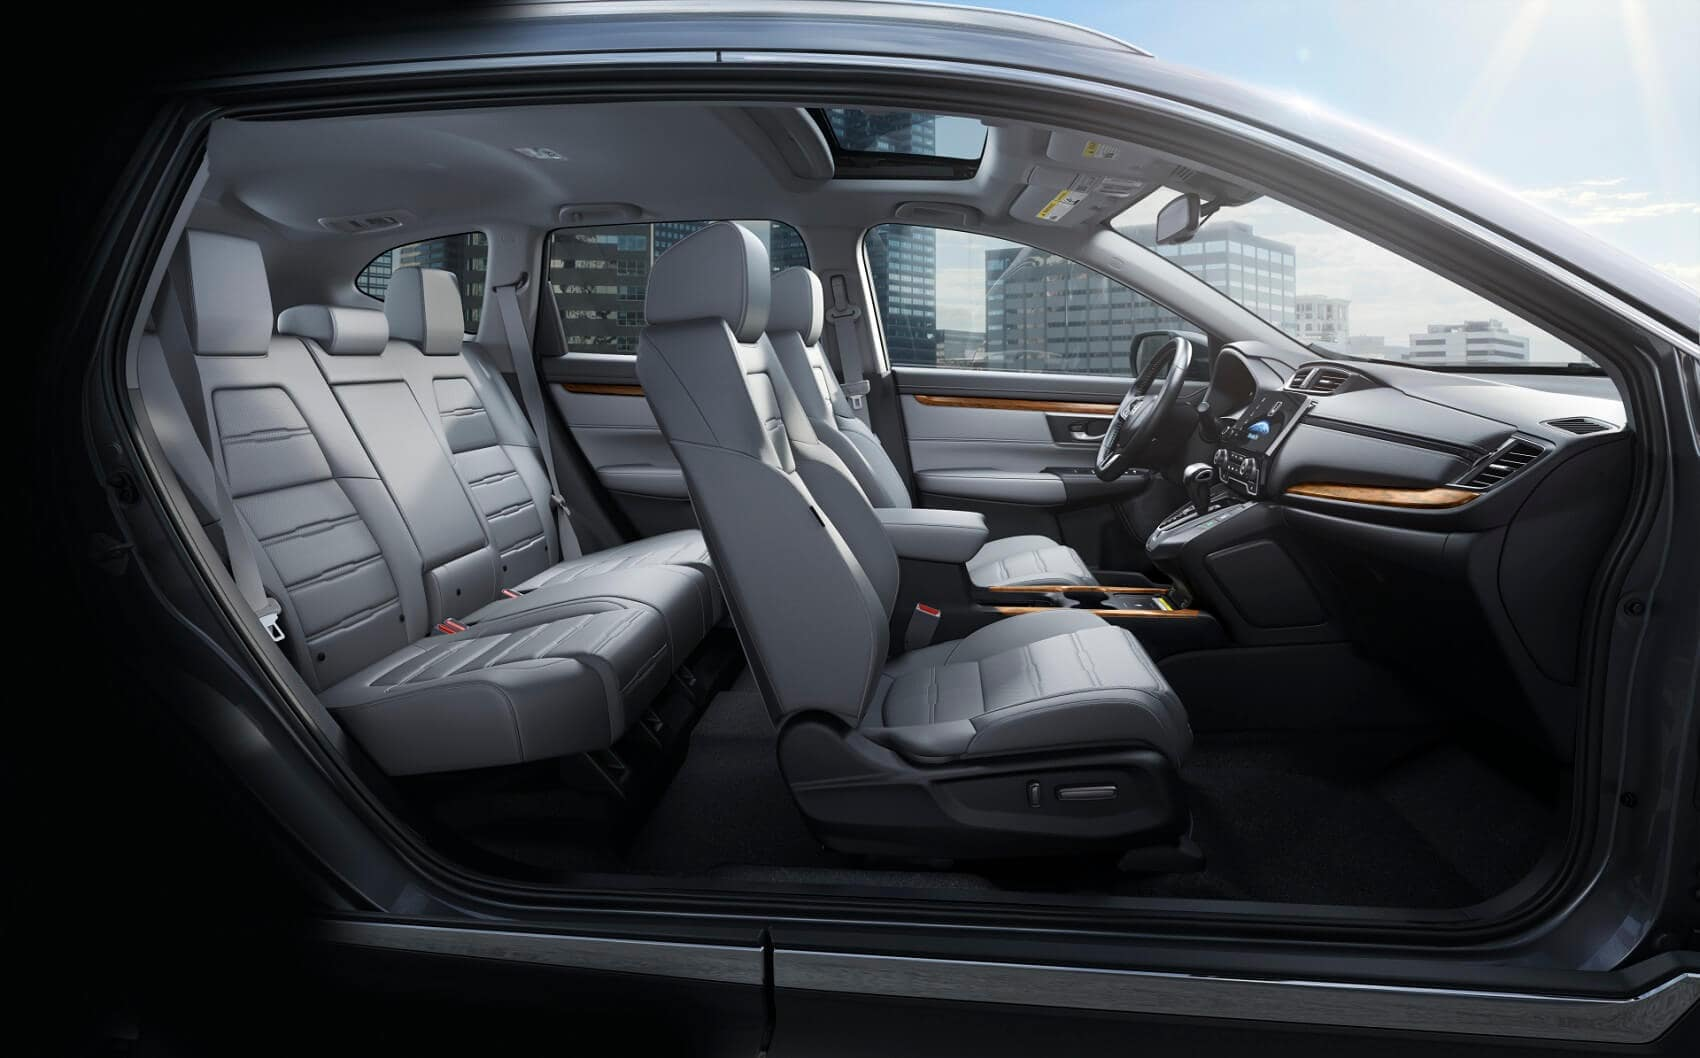 Honda CR-V Interior